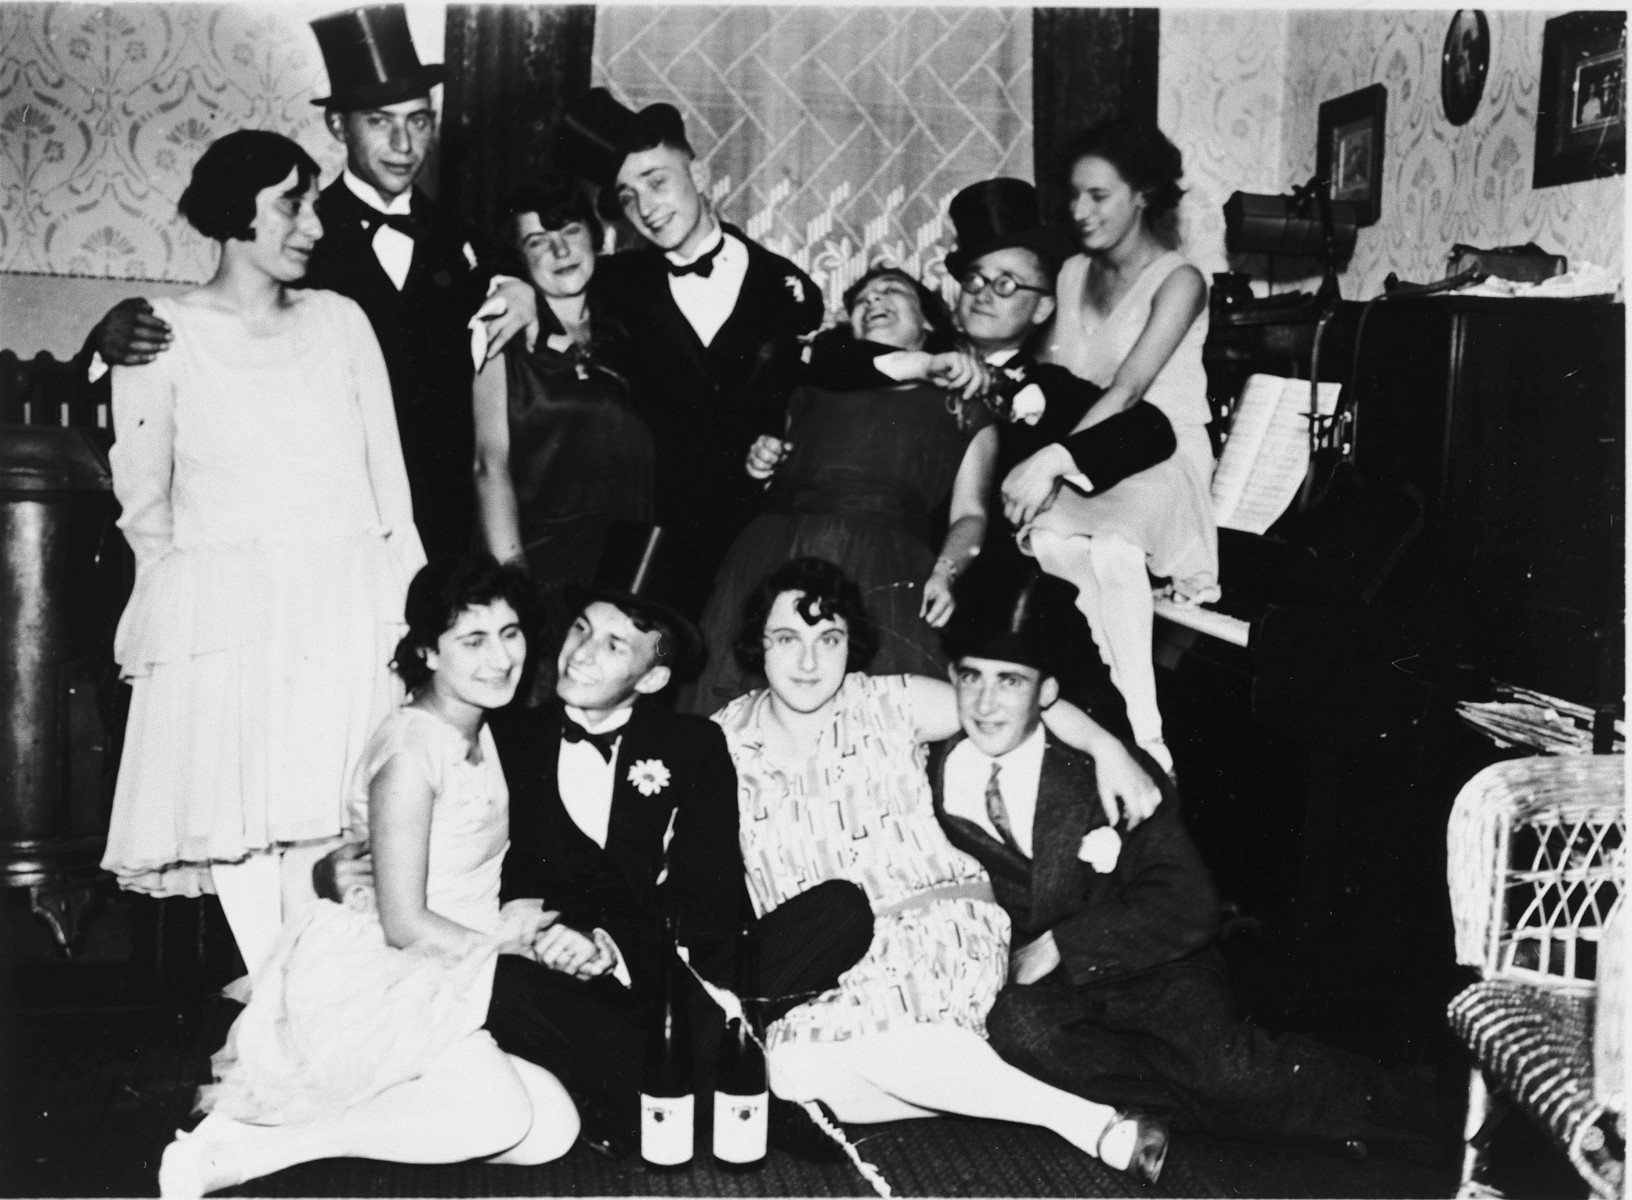 German-Jewish young adults celebrate New Years eve together.  Harri Hoffman is standing fourth from the left.  Herta Goldschmidt is at the far right.